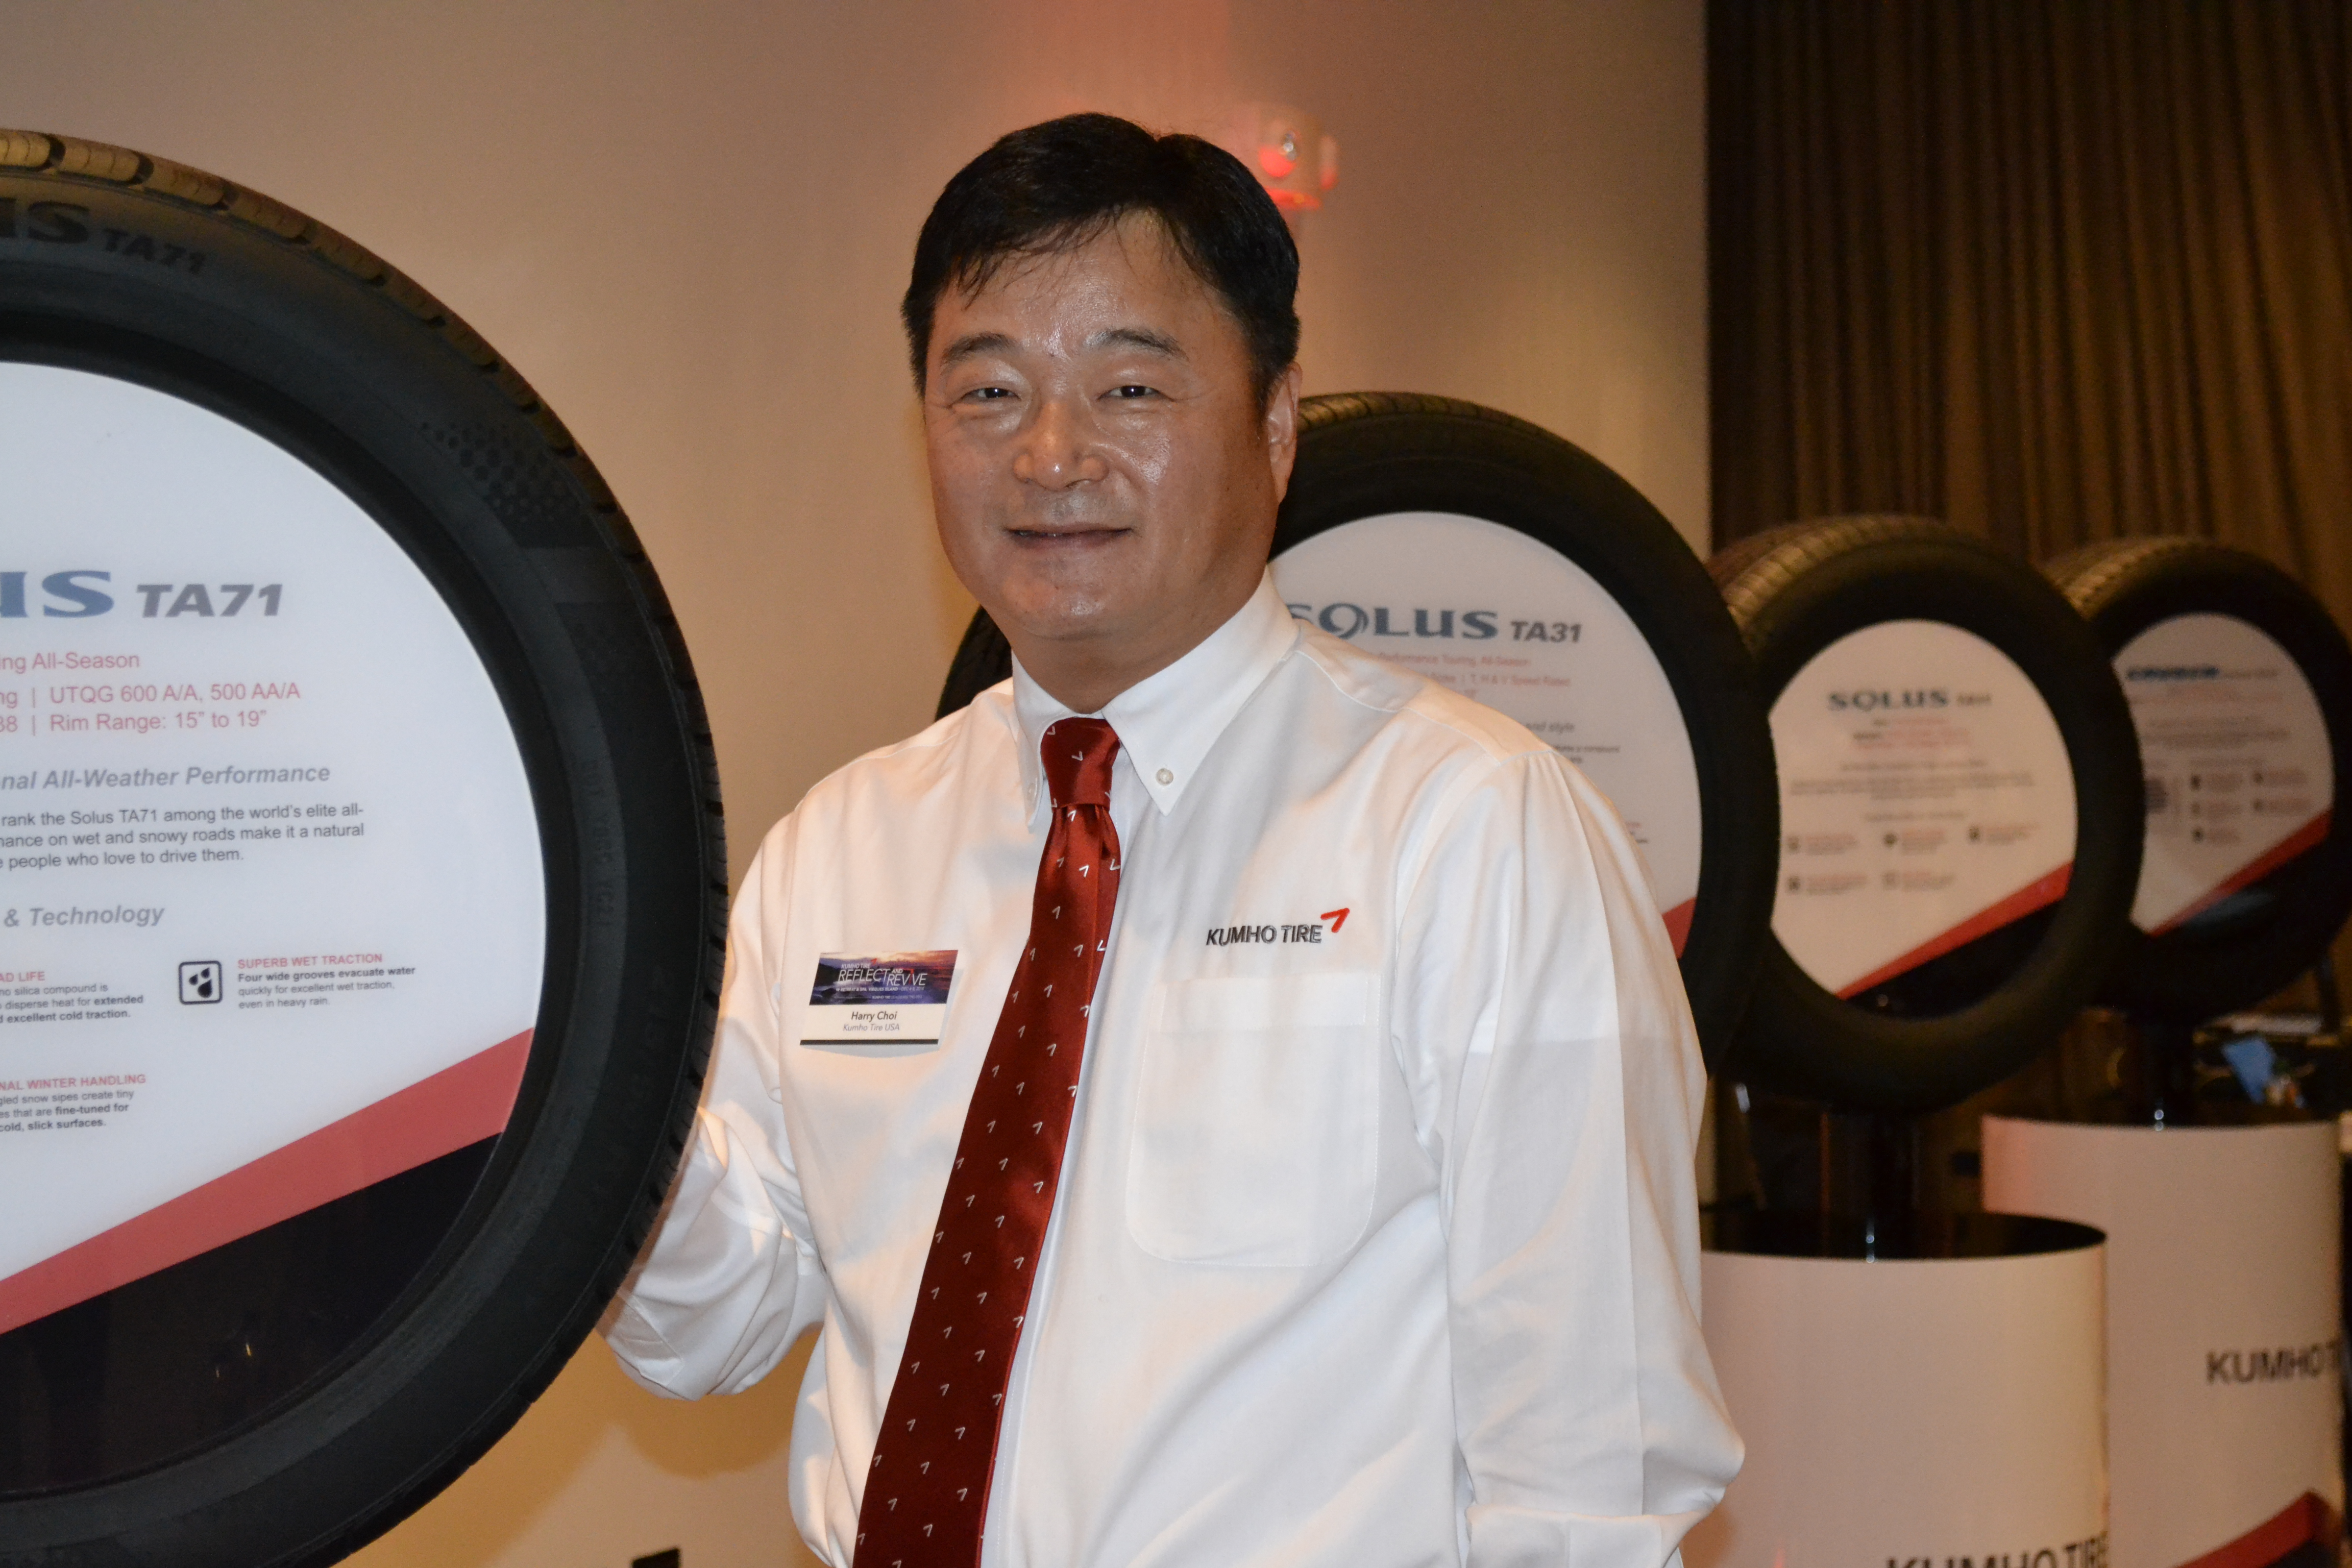 New tires and promotions boost Kumho brand